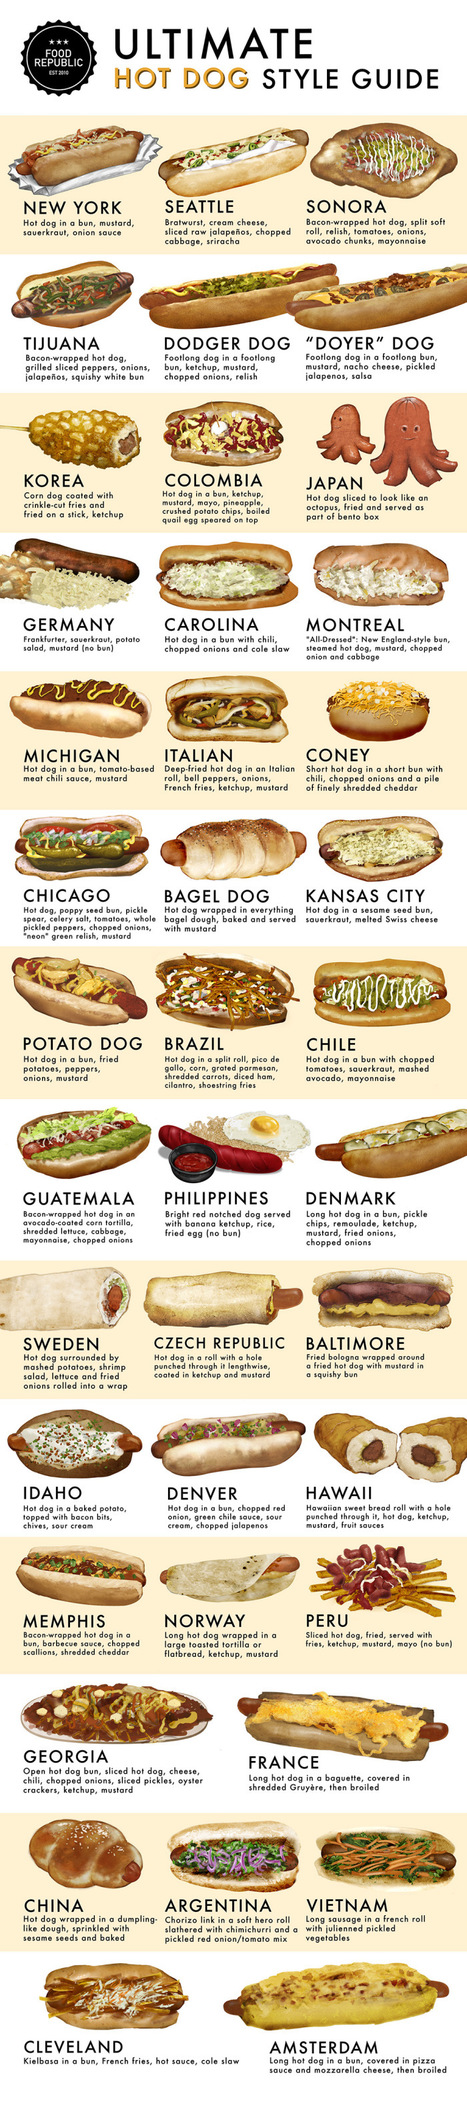 40 Ways The World Makes Awesome Hot Dogs | Navigate | Scoop.it